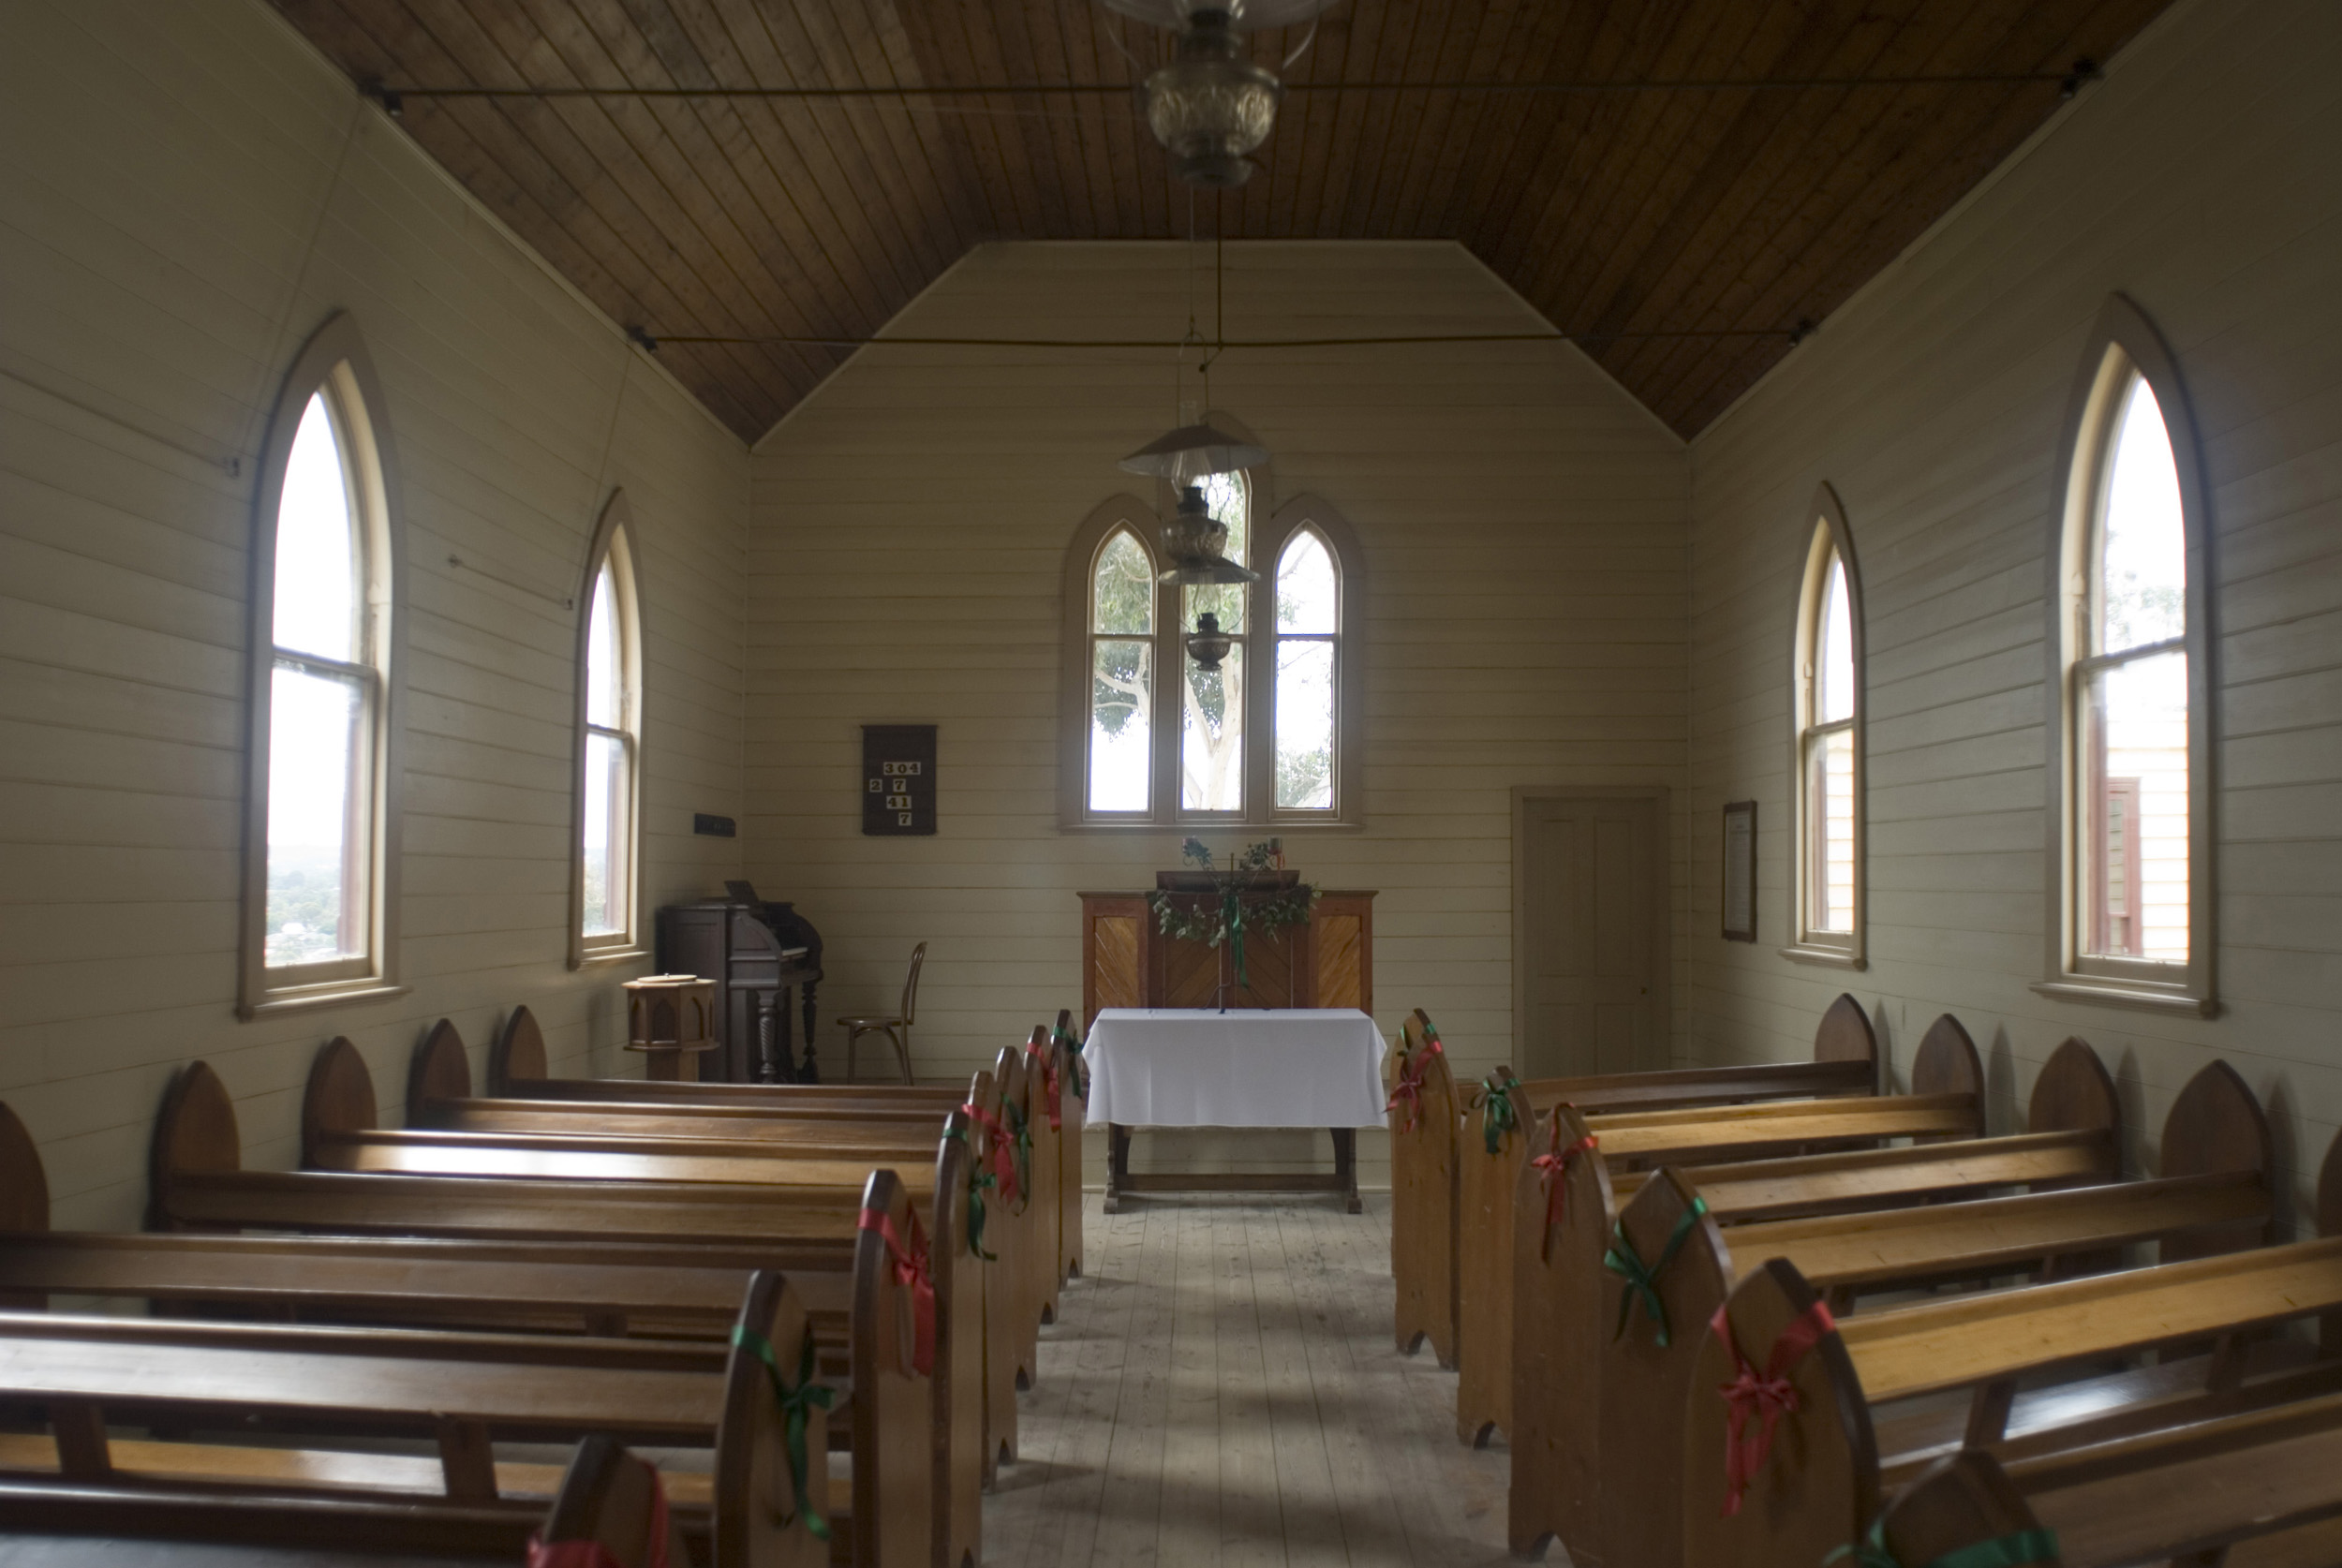 Aisle In Rural Church Creative Commons Stock Image